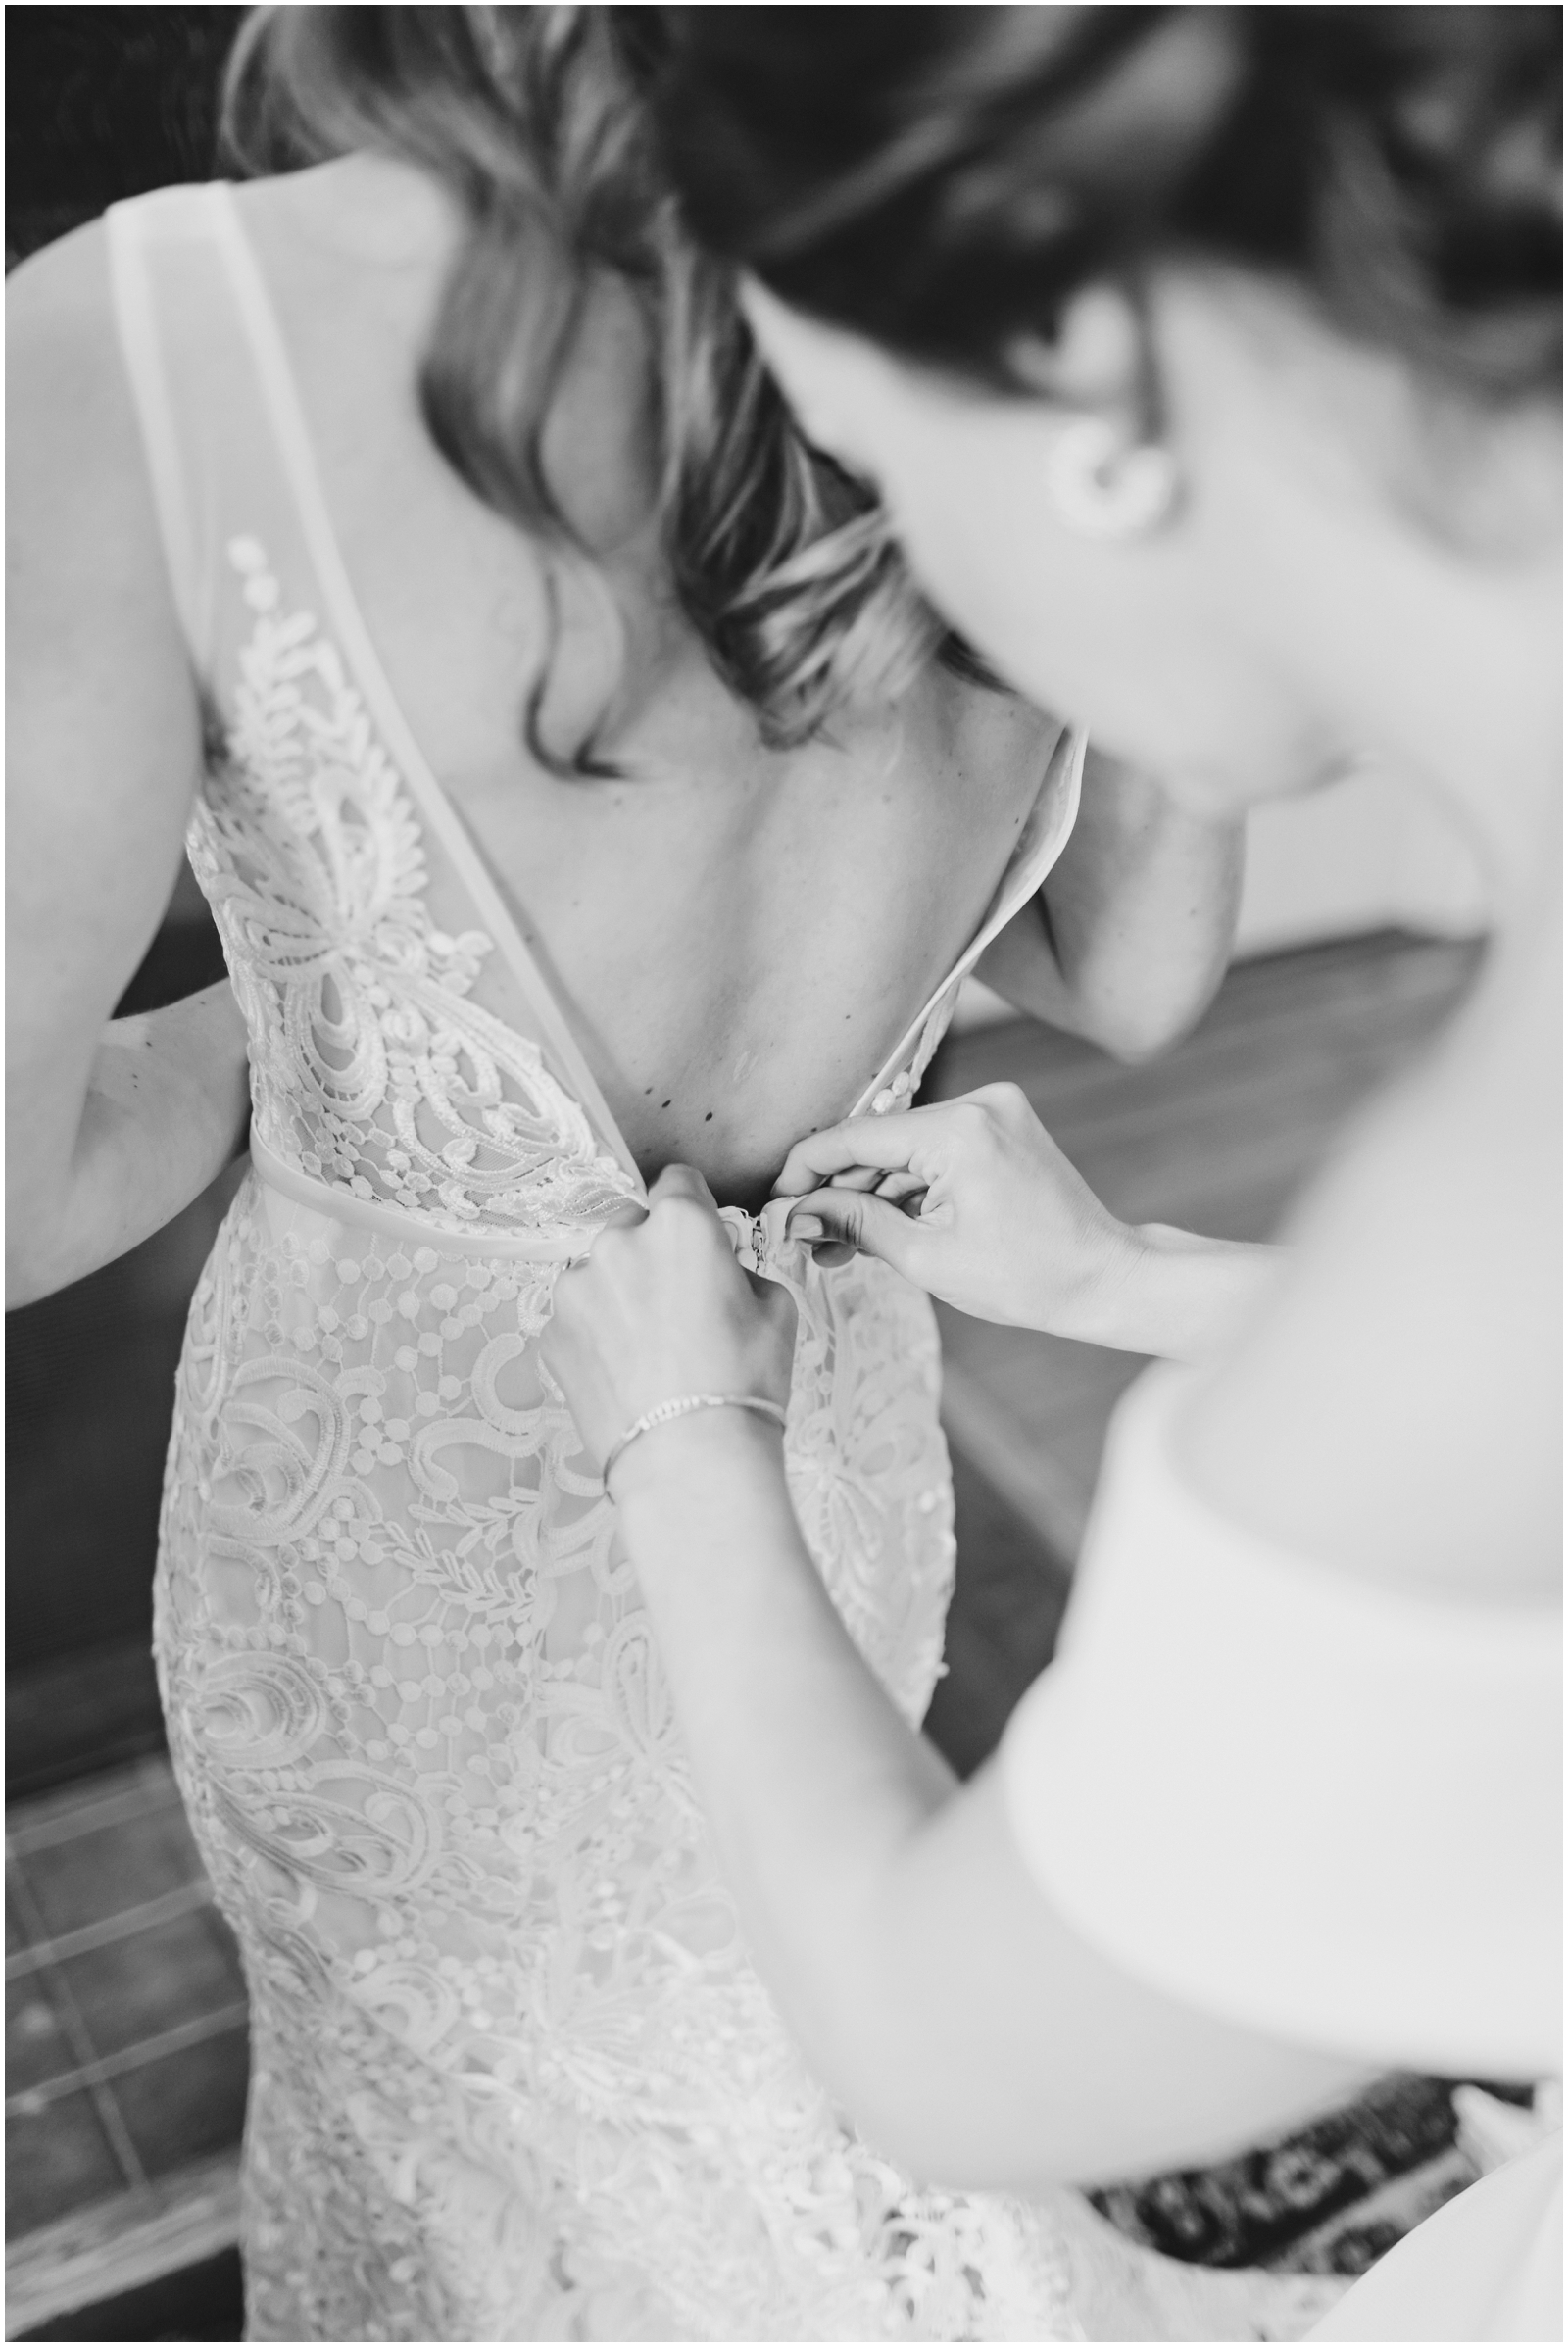 Bride getting ready for her wedding in Texas